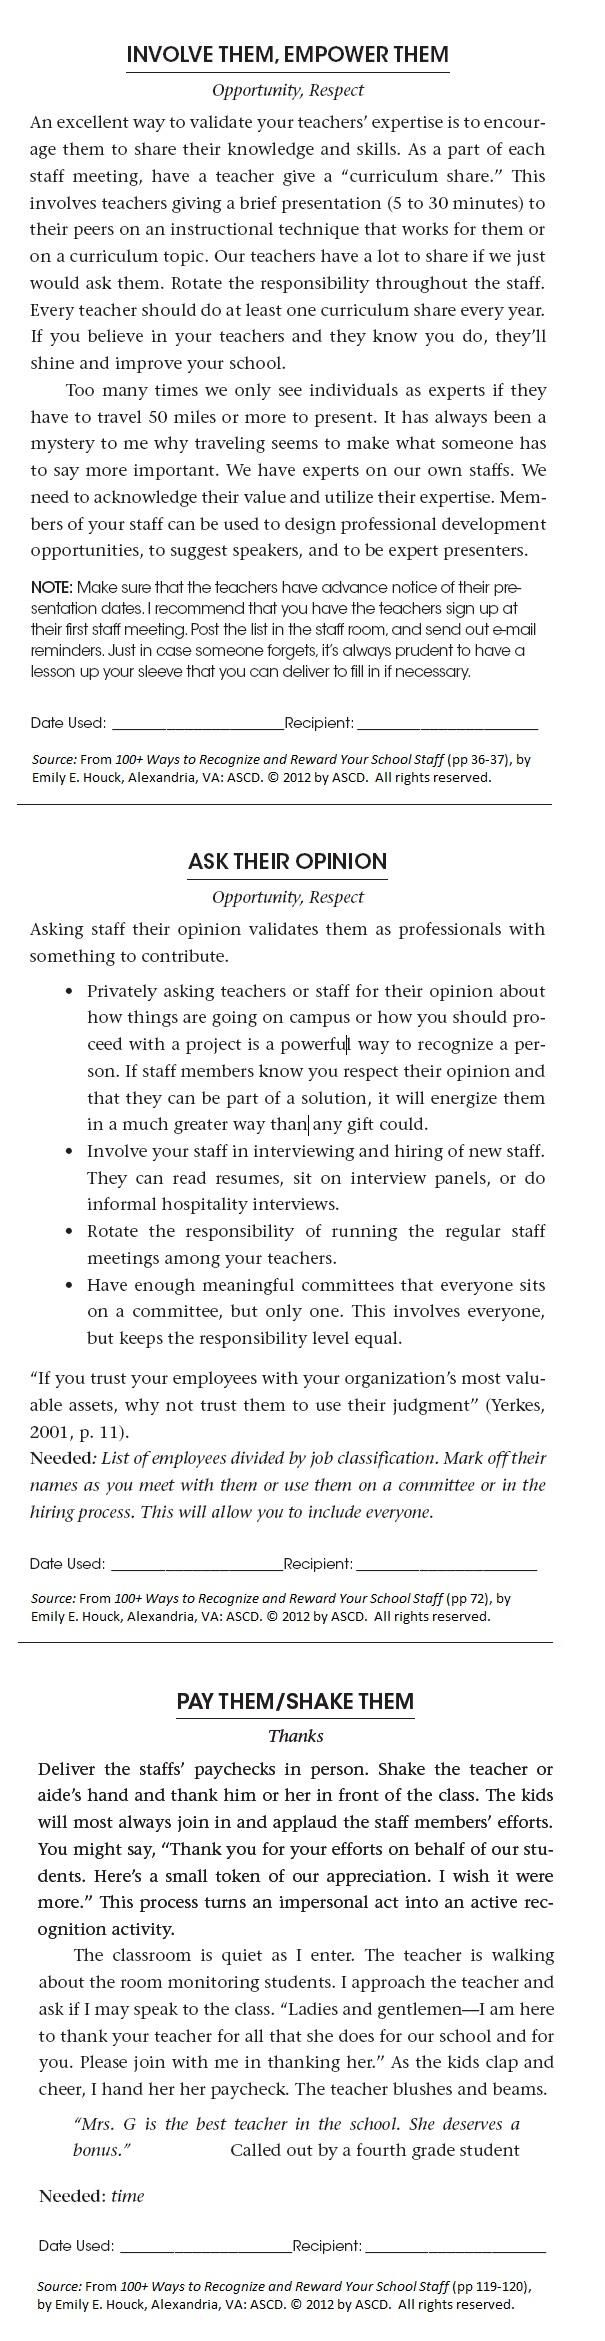 An excerpt from 100+ Ways to Recognize and Reward Your School Staff by Emily Houck